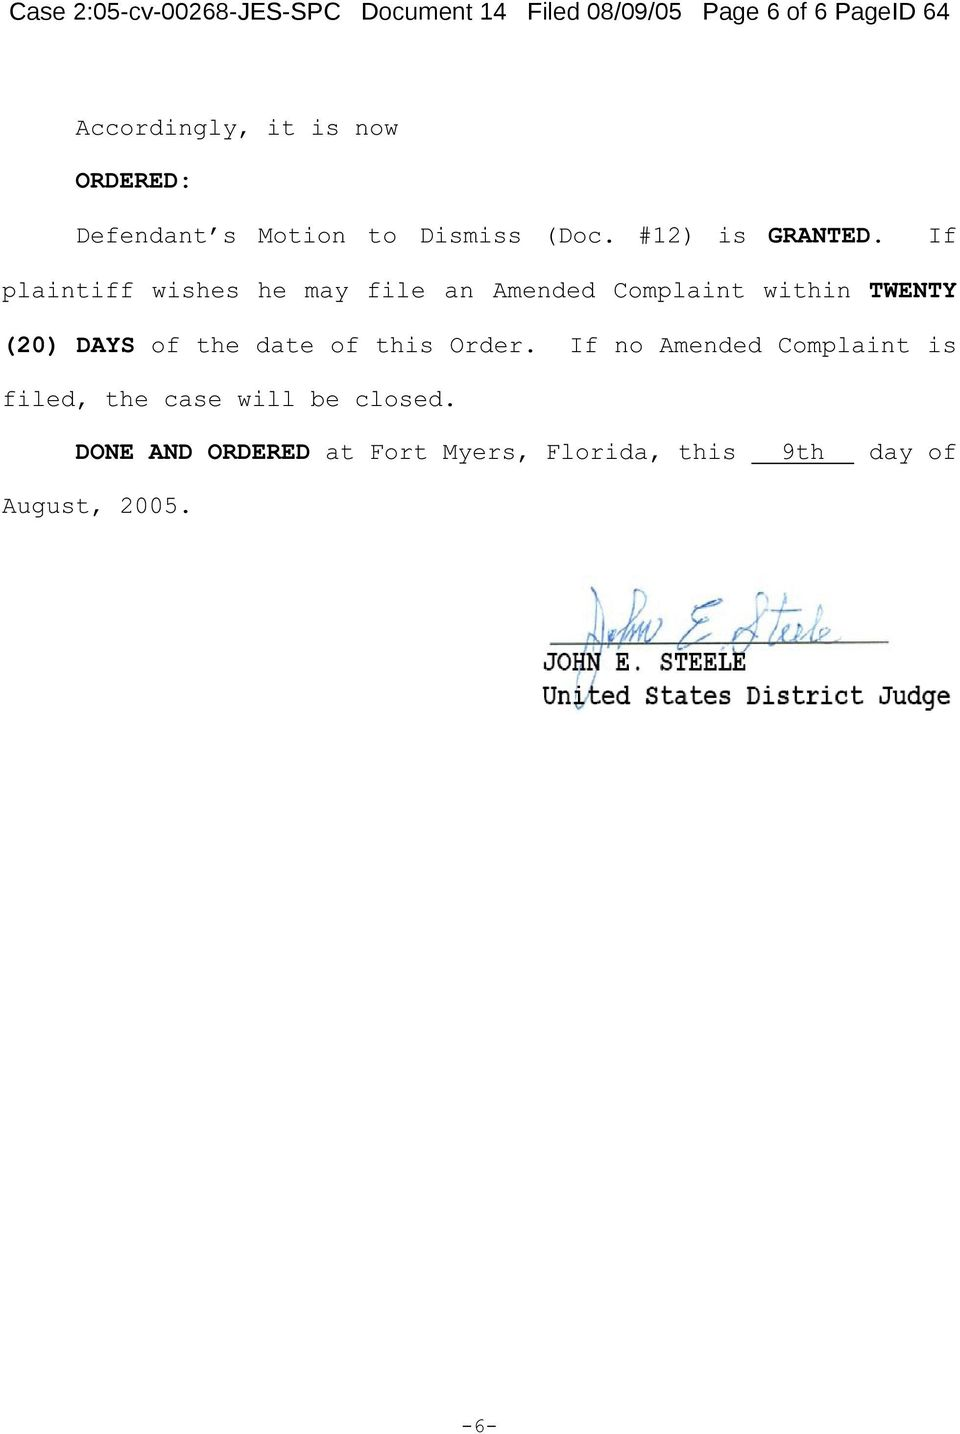 If plaintiff wishes he may file an Amended Complaint within TWENTY (20) DAYS of the date of this